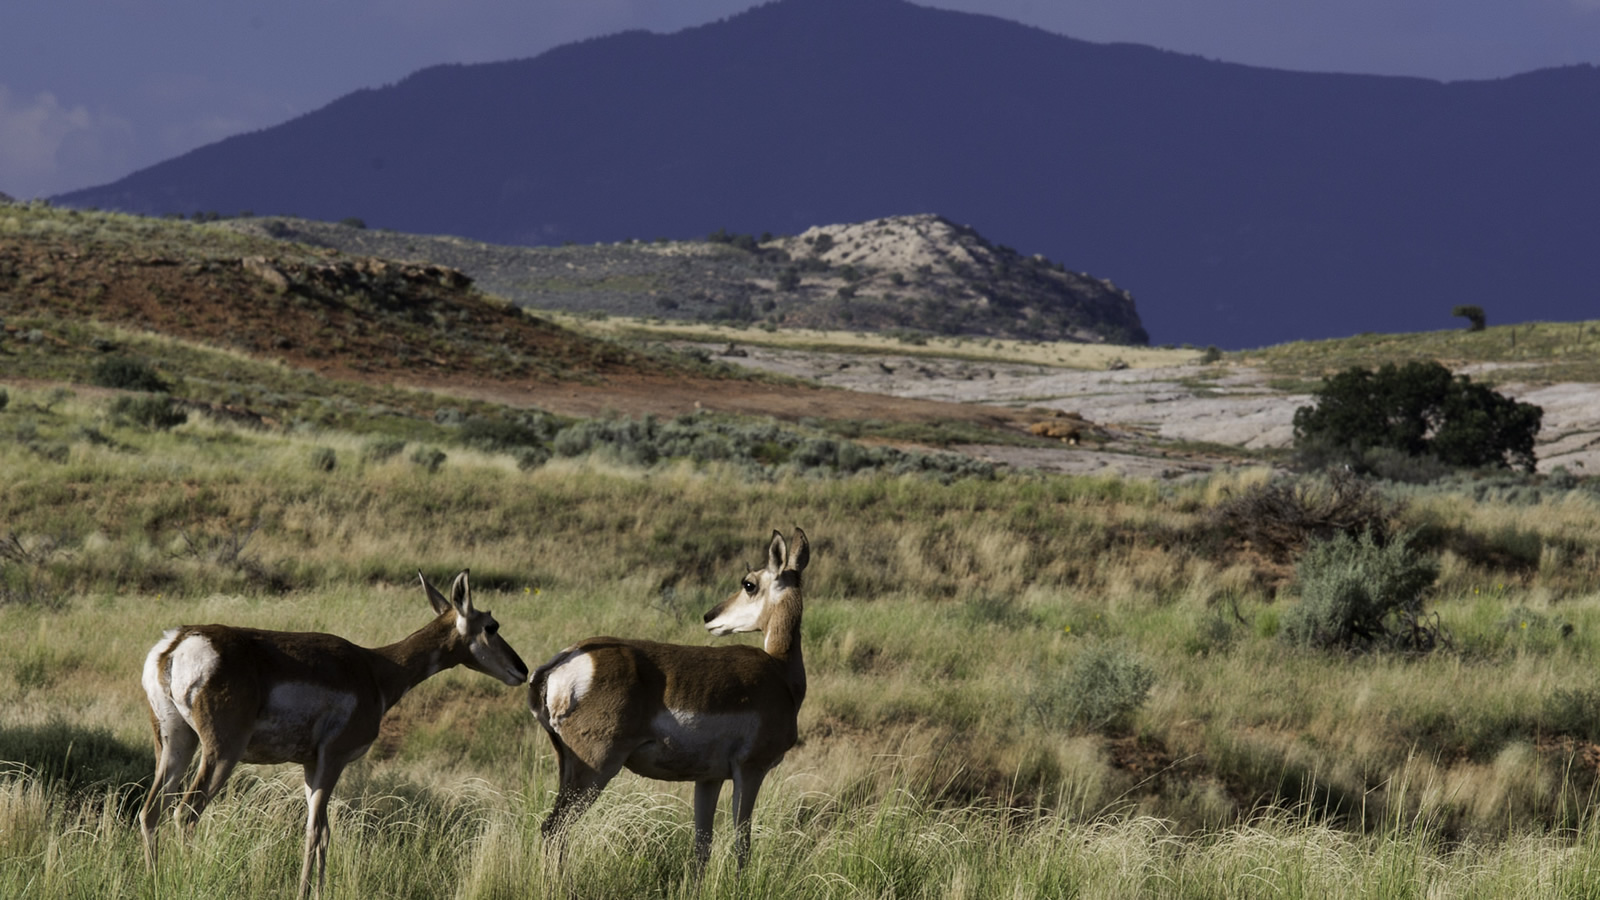 <h4>ORGAN MOUNTAINS-DESERT PEAKS (N.M.): THREATENED</h4><h5>New Mexico's Organ Mountains-Desert Peaks National Monument could lose its national monument status entirely.</h5><em>Bob Wick / BLM</em>